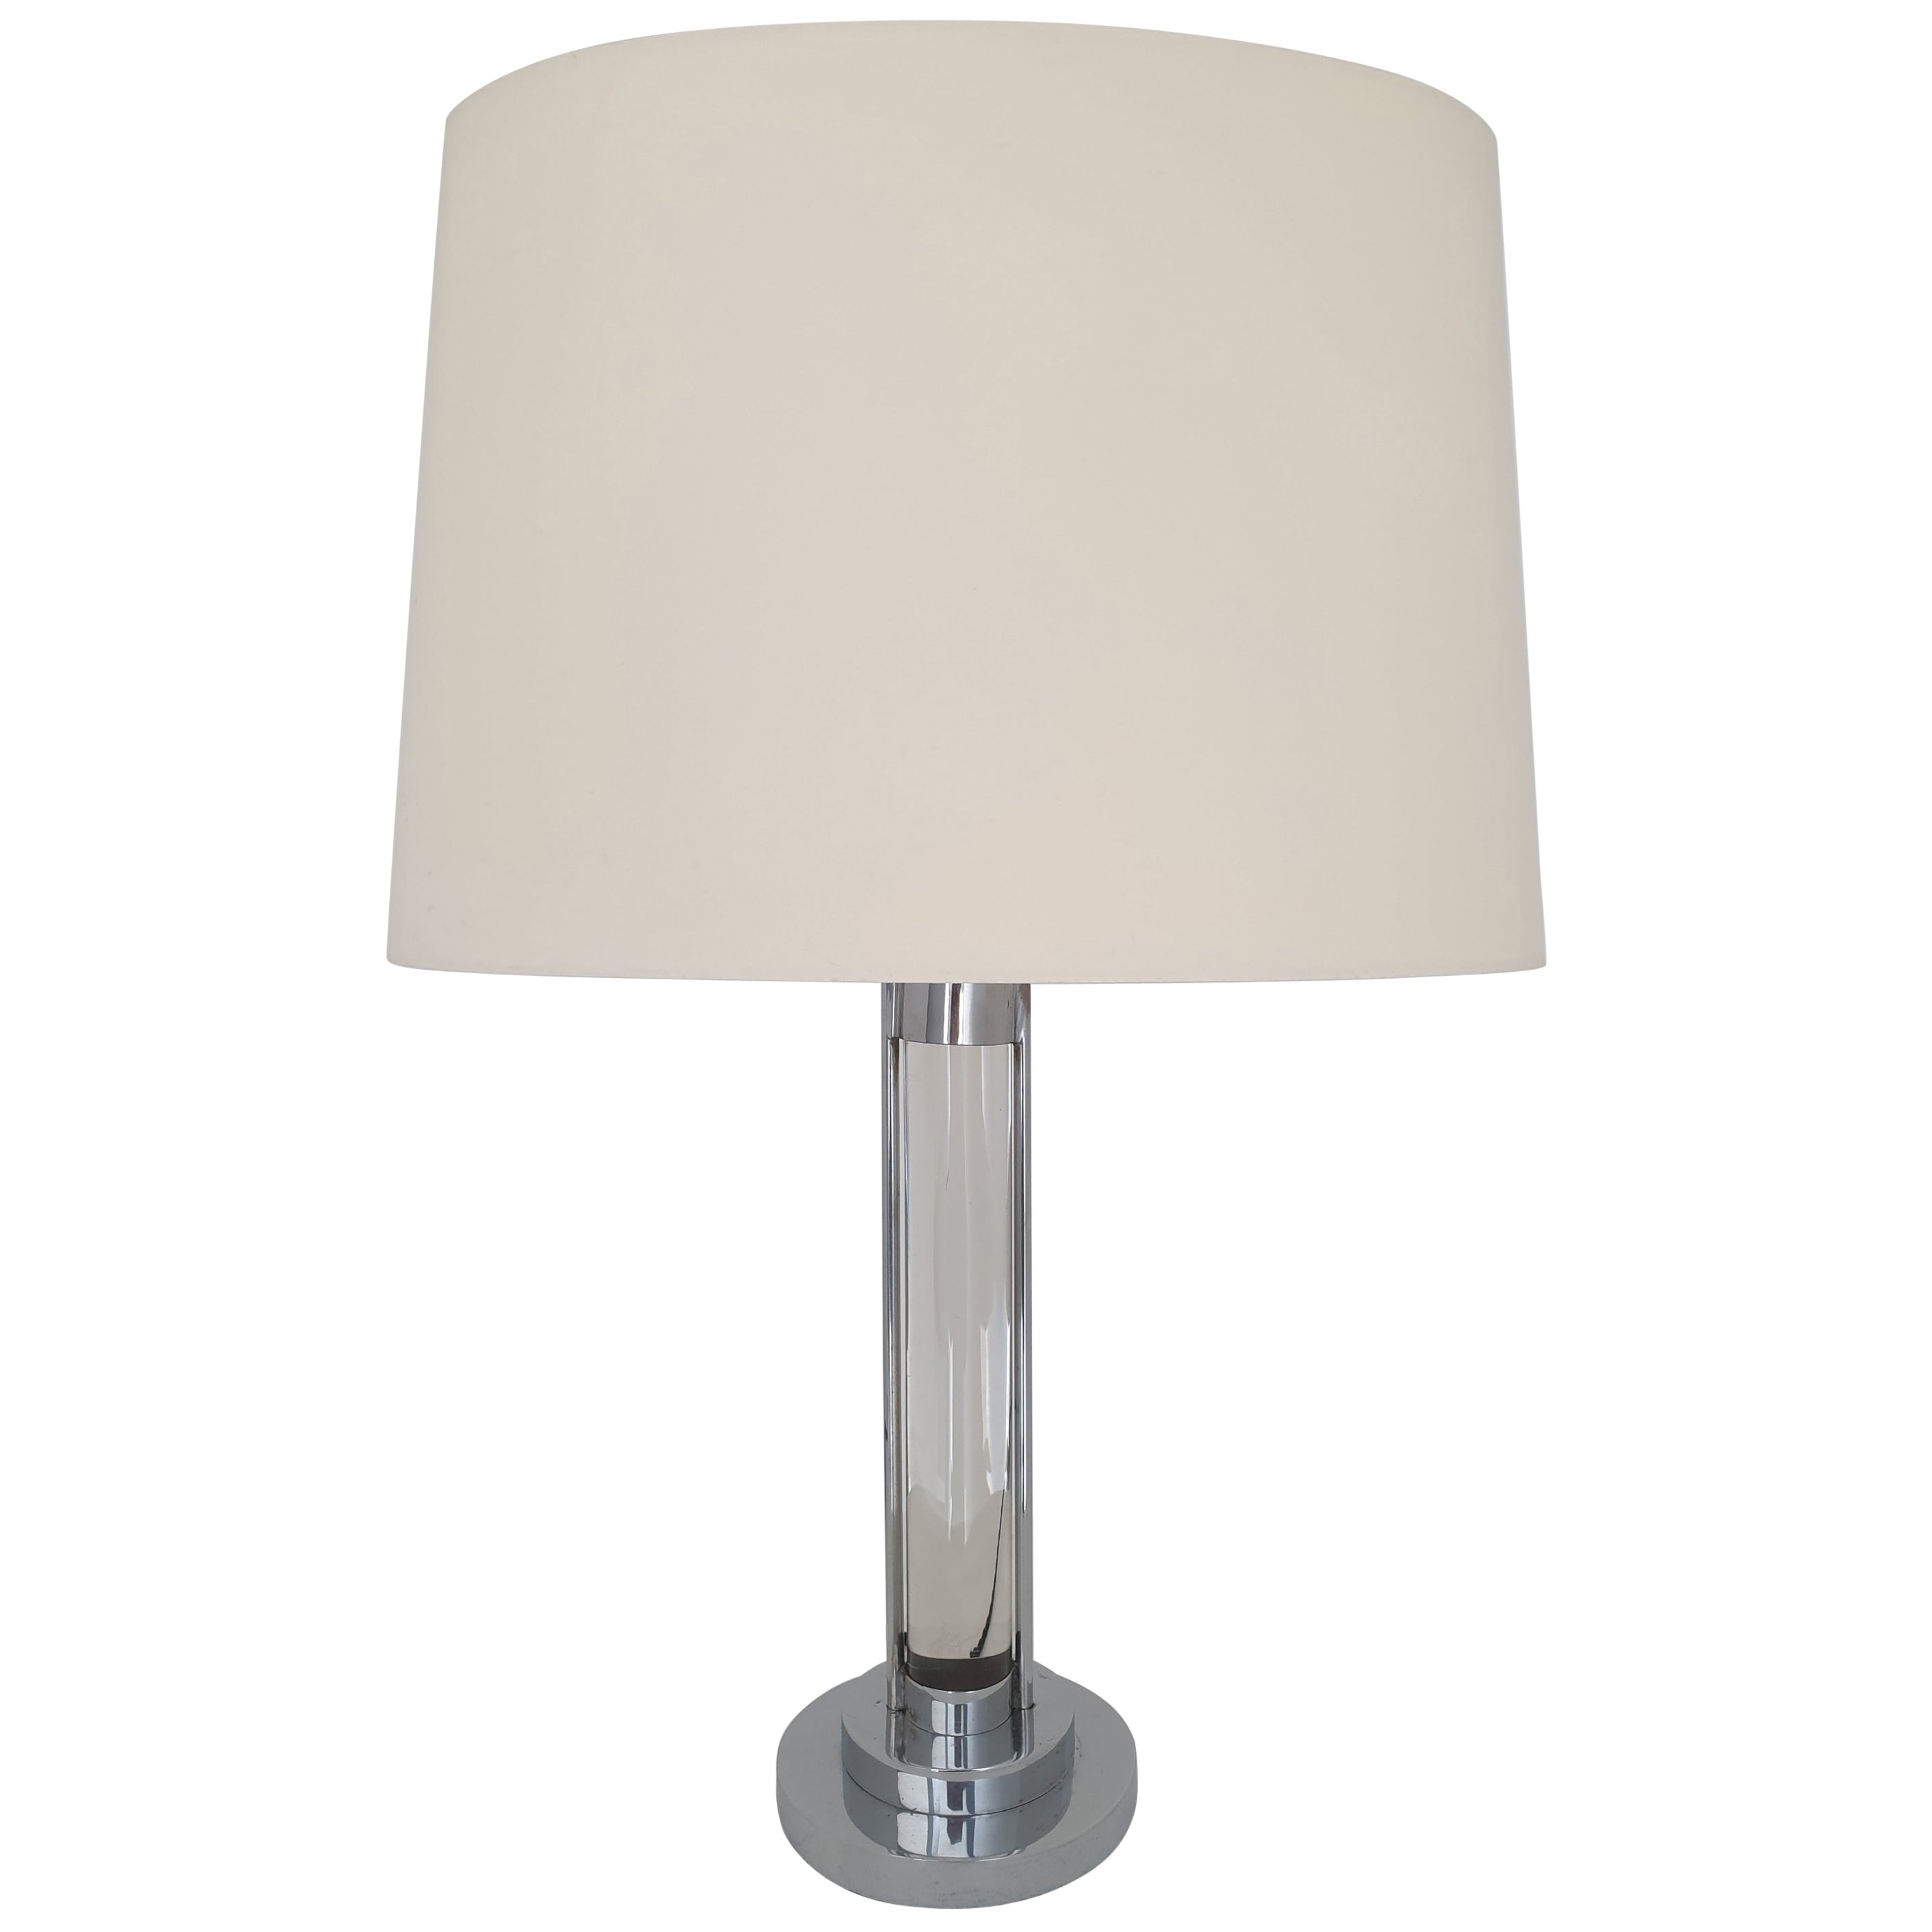 Mid-Century Modern Table Lamp attributed to Jacques Adnet